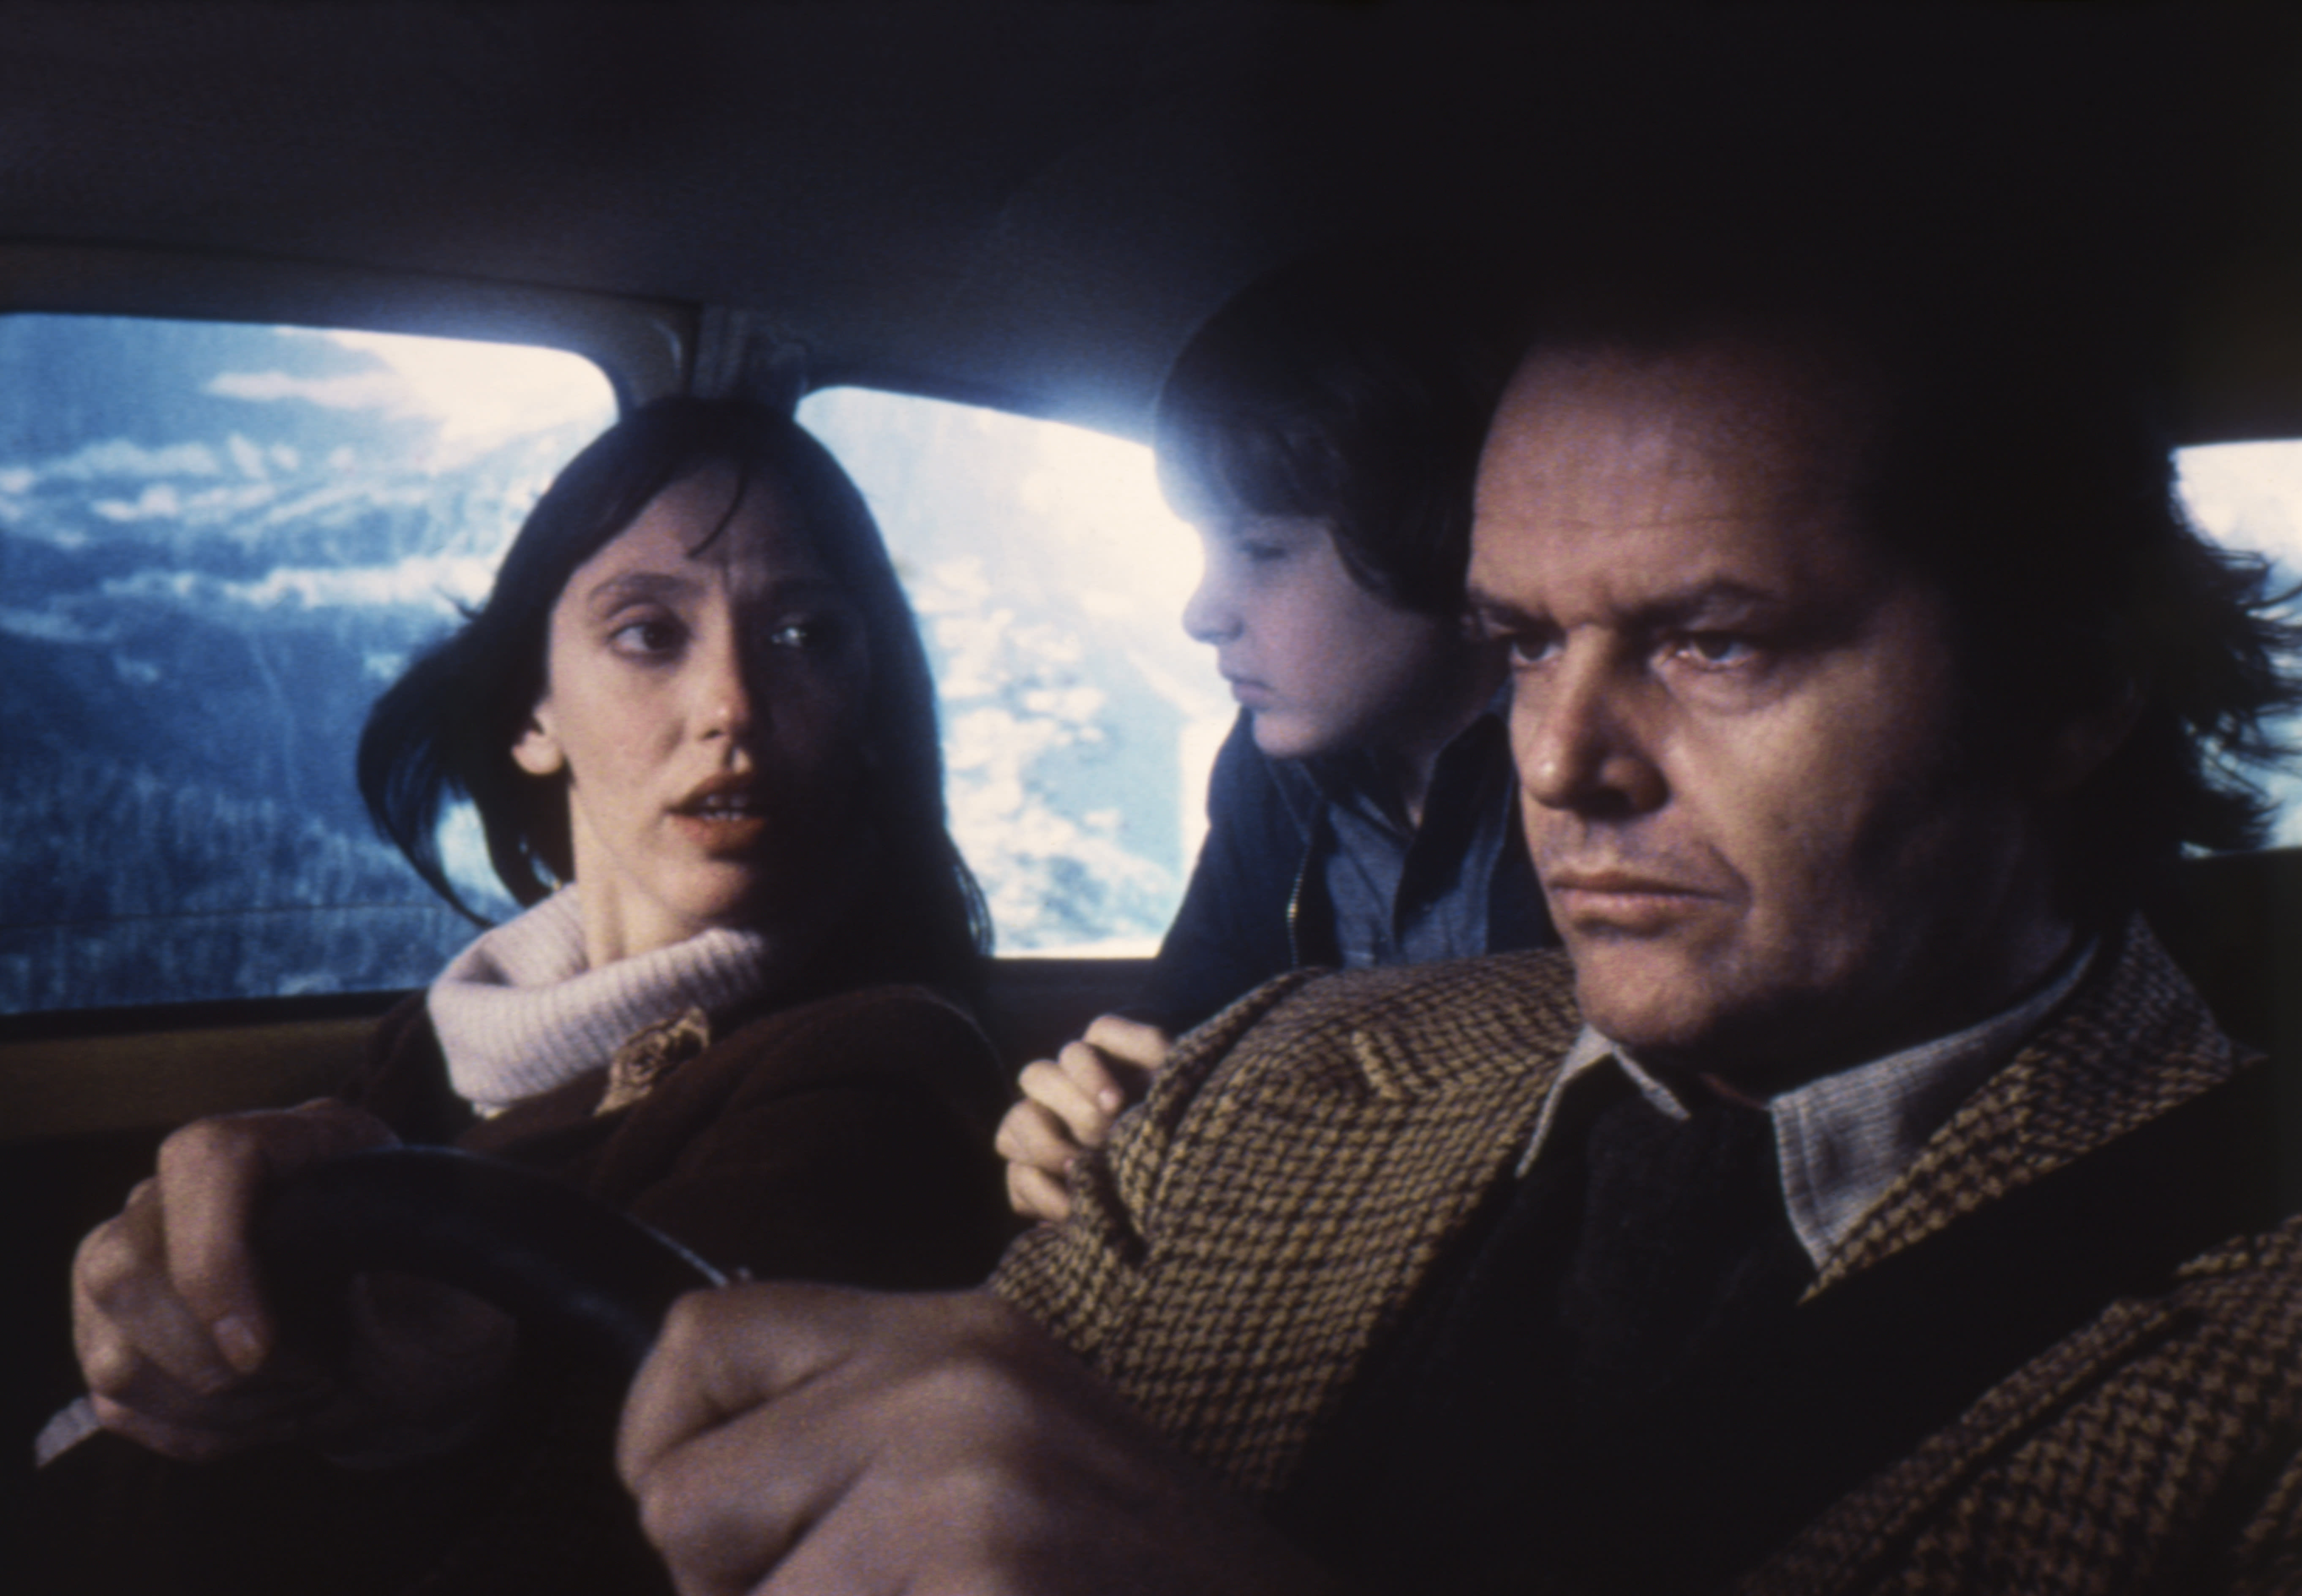 American actors Jack Nicholson, Danny Lloyd and Shelley Duvall on the set of The Shining, based on the novel by Stephen King, and directed by Stanley Kubrick. (Photo by Sunset Boulevard/Corbis via Getty Images)